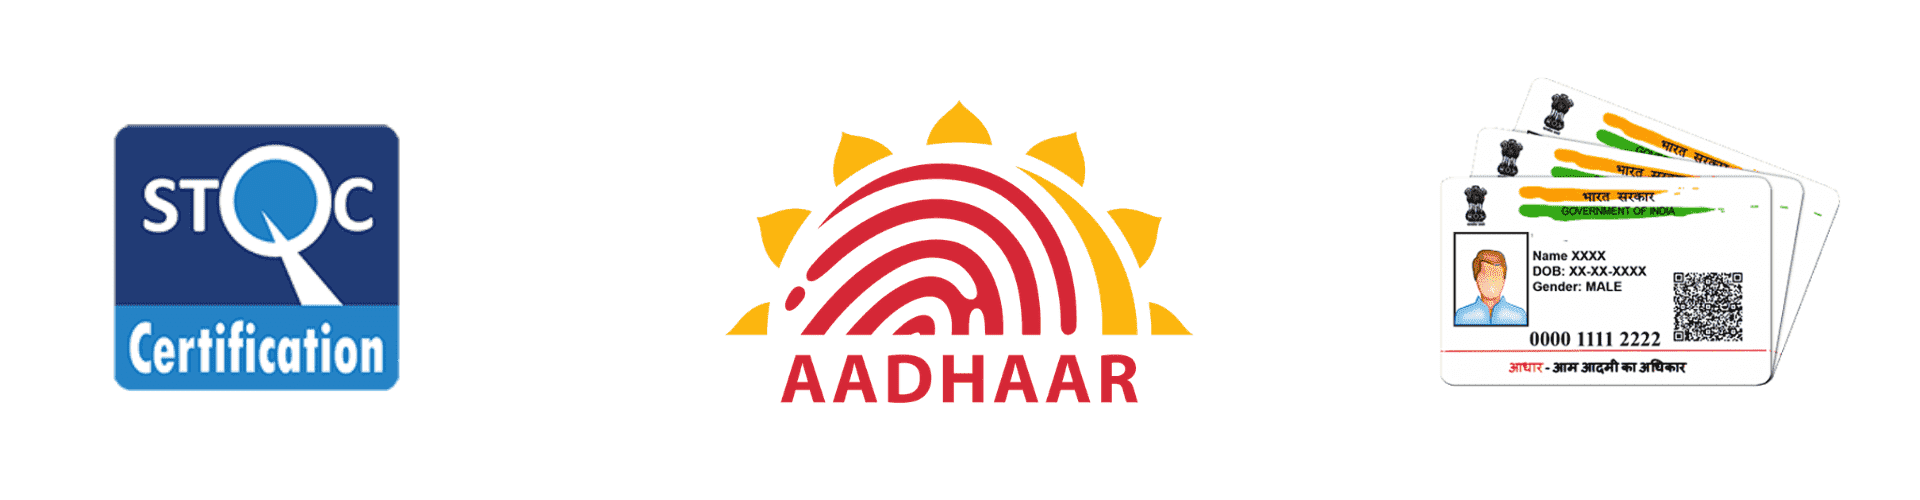 Aadhar Card Scanner, 2d aadhar card scanner, stqc barcode scanner, qr code scanner, aadhar card scanner for android, Aadhar Card scanner manufacturer india, Aadhar Card Scanner suppliers, Aadhar Card Scanner dealers, qr code scanner manufacturer, stqc barcode scanner manufacturer, QR aadhar code scanner, aadhar card fingerprint scanner, aadhar card qr scanner online, aadhar card scanner app, aadhar card barcode scanner, aadhar card barcode scanning